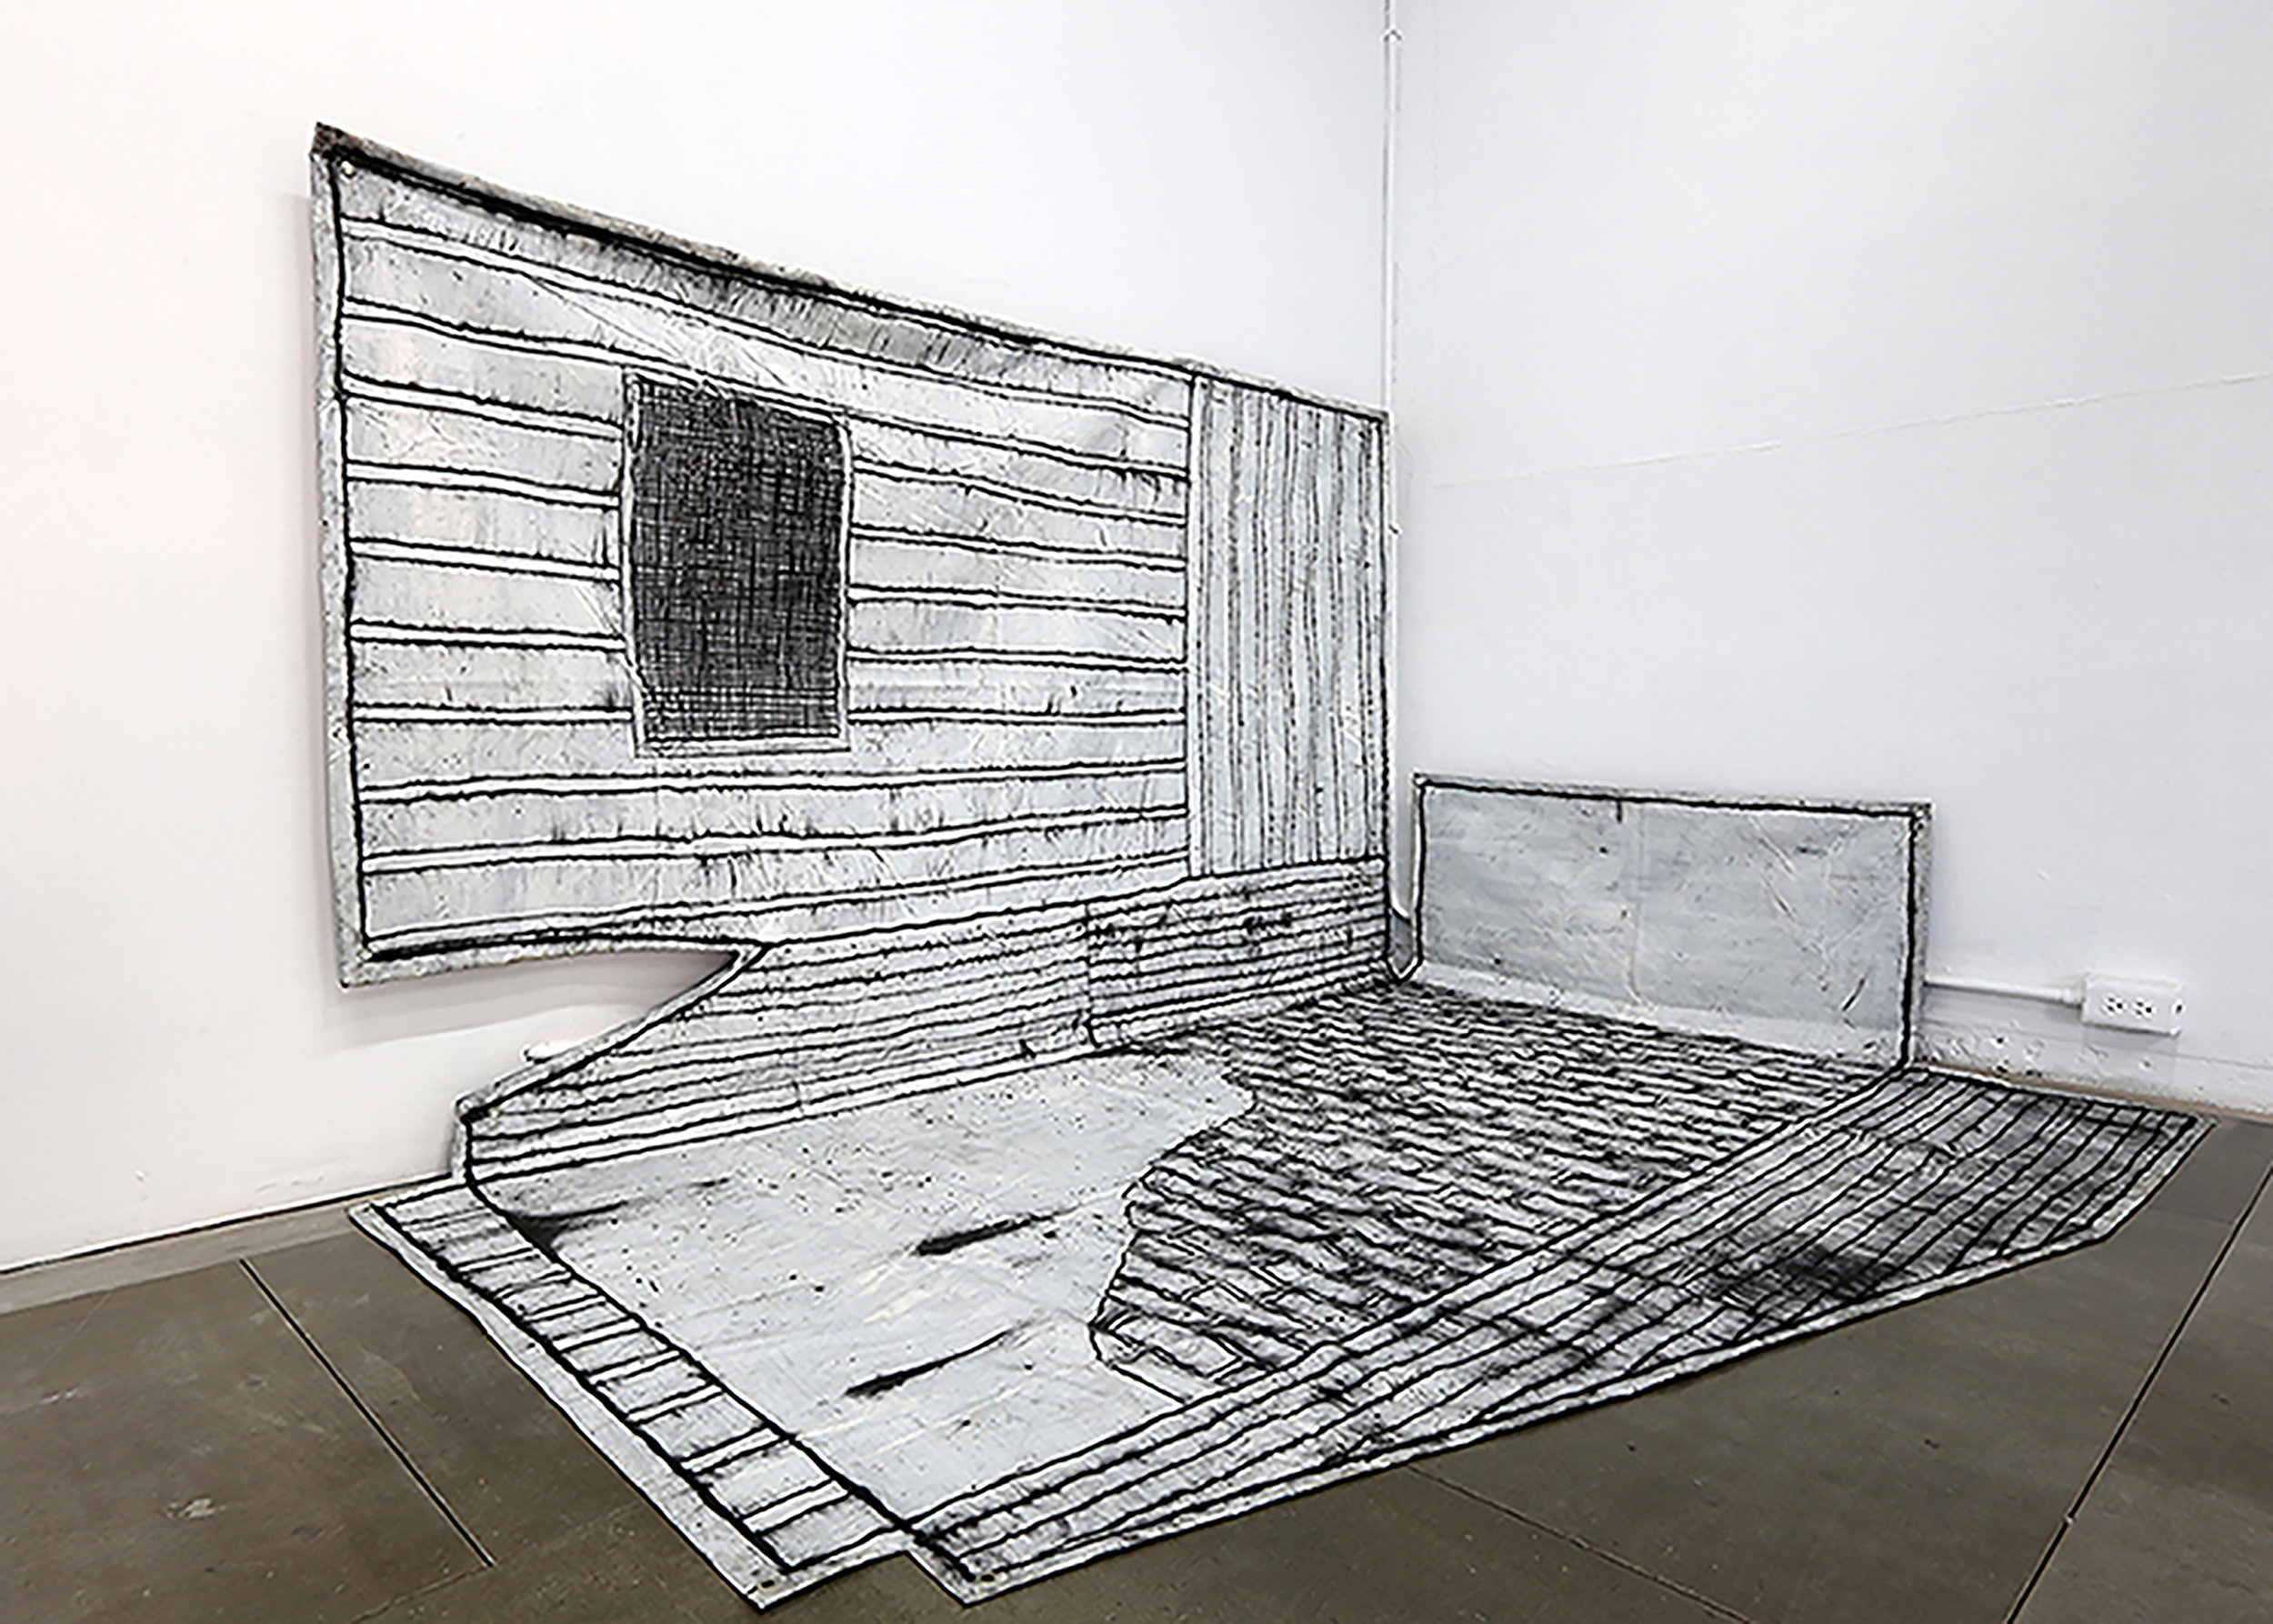 Chiao-Yen Hsu,  Tomography, The Space of Plus # 3,  2012, charcoal, acrylic, plastic, 280 x 300 cm